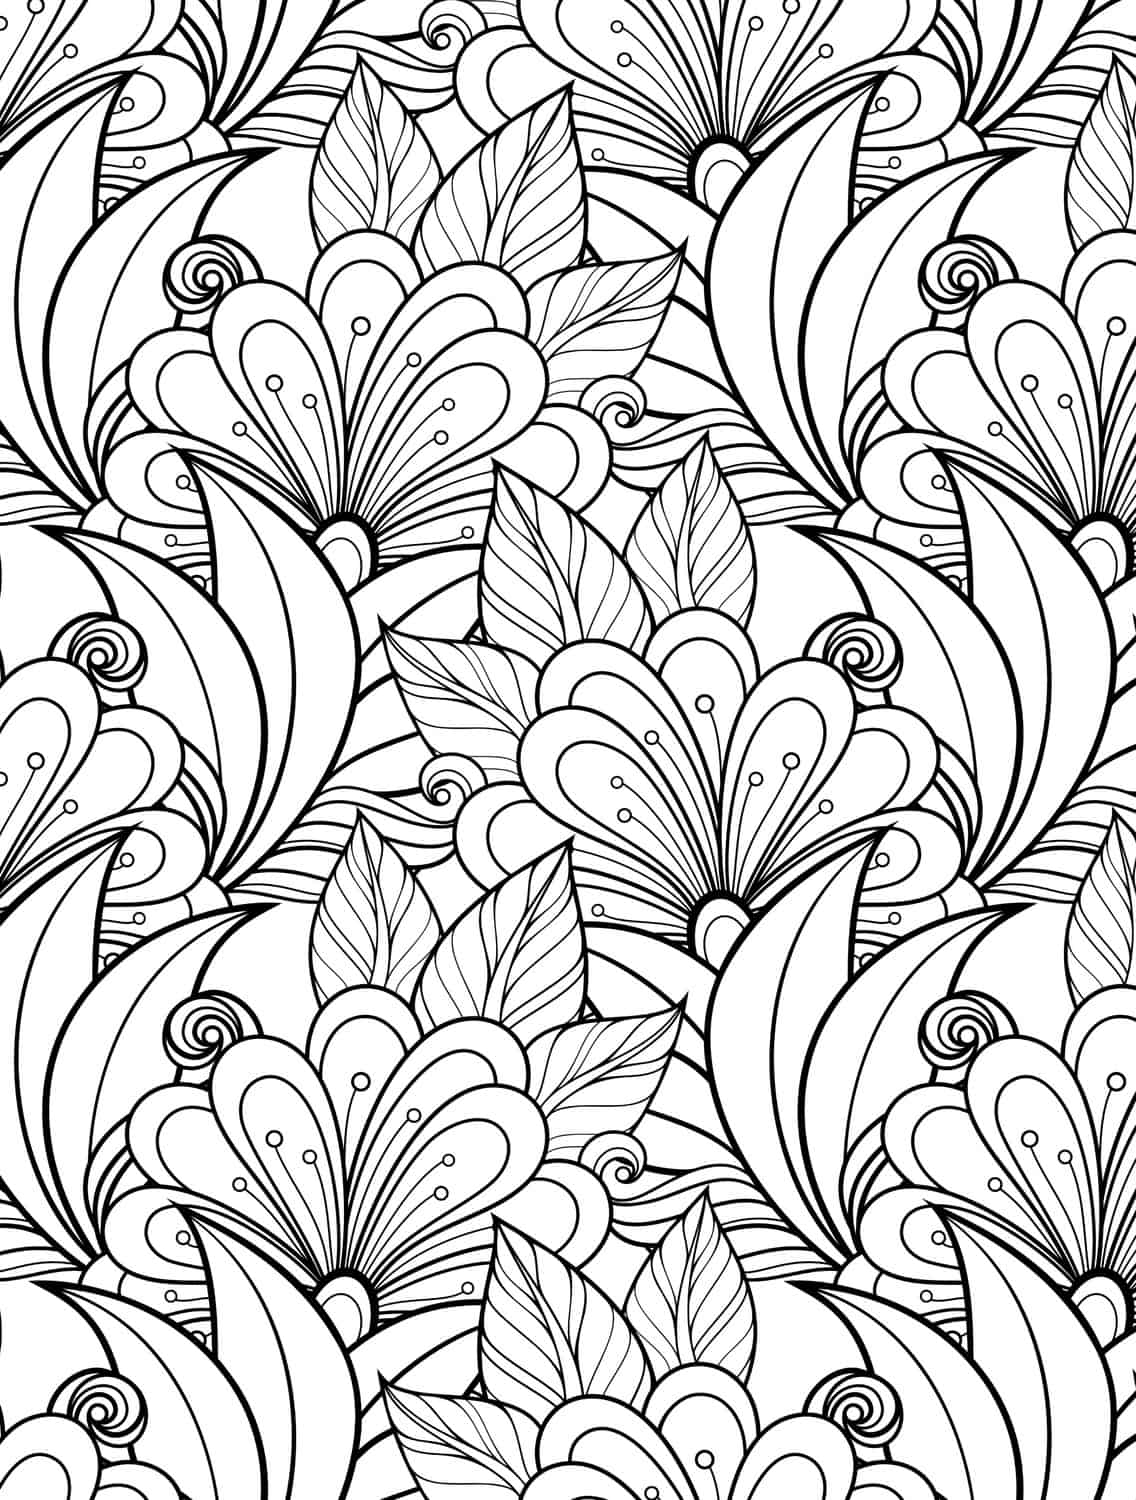 24 more free printable adult coloring pages page 7 of 25 for Coloring pages to print for adults